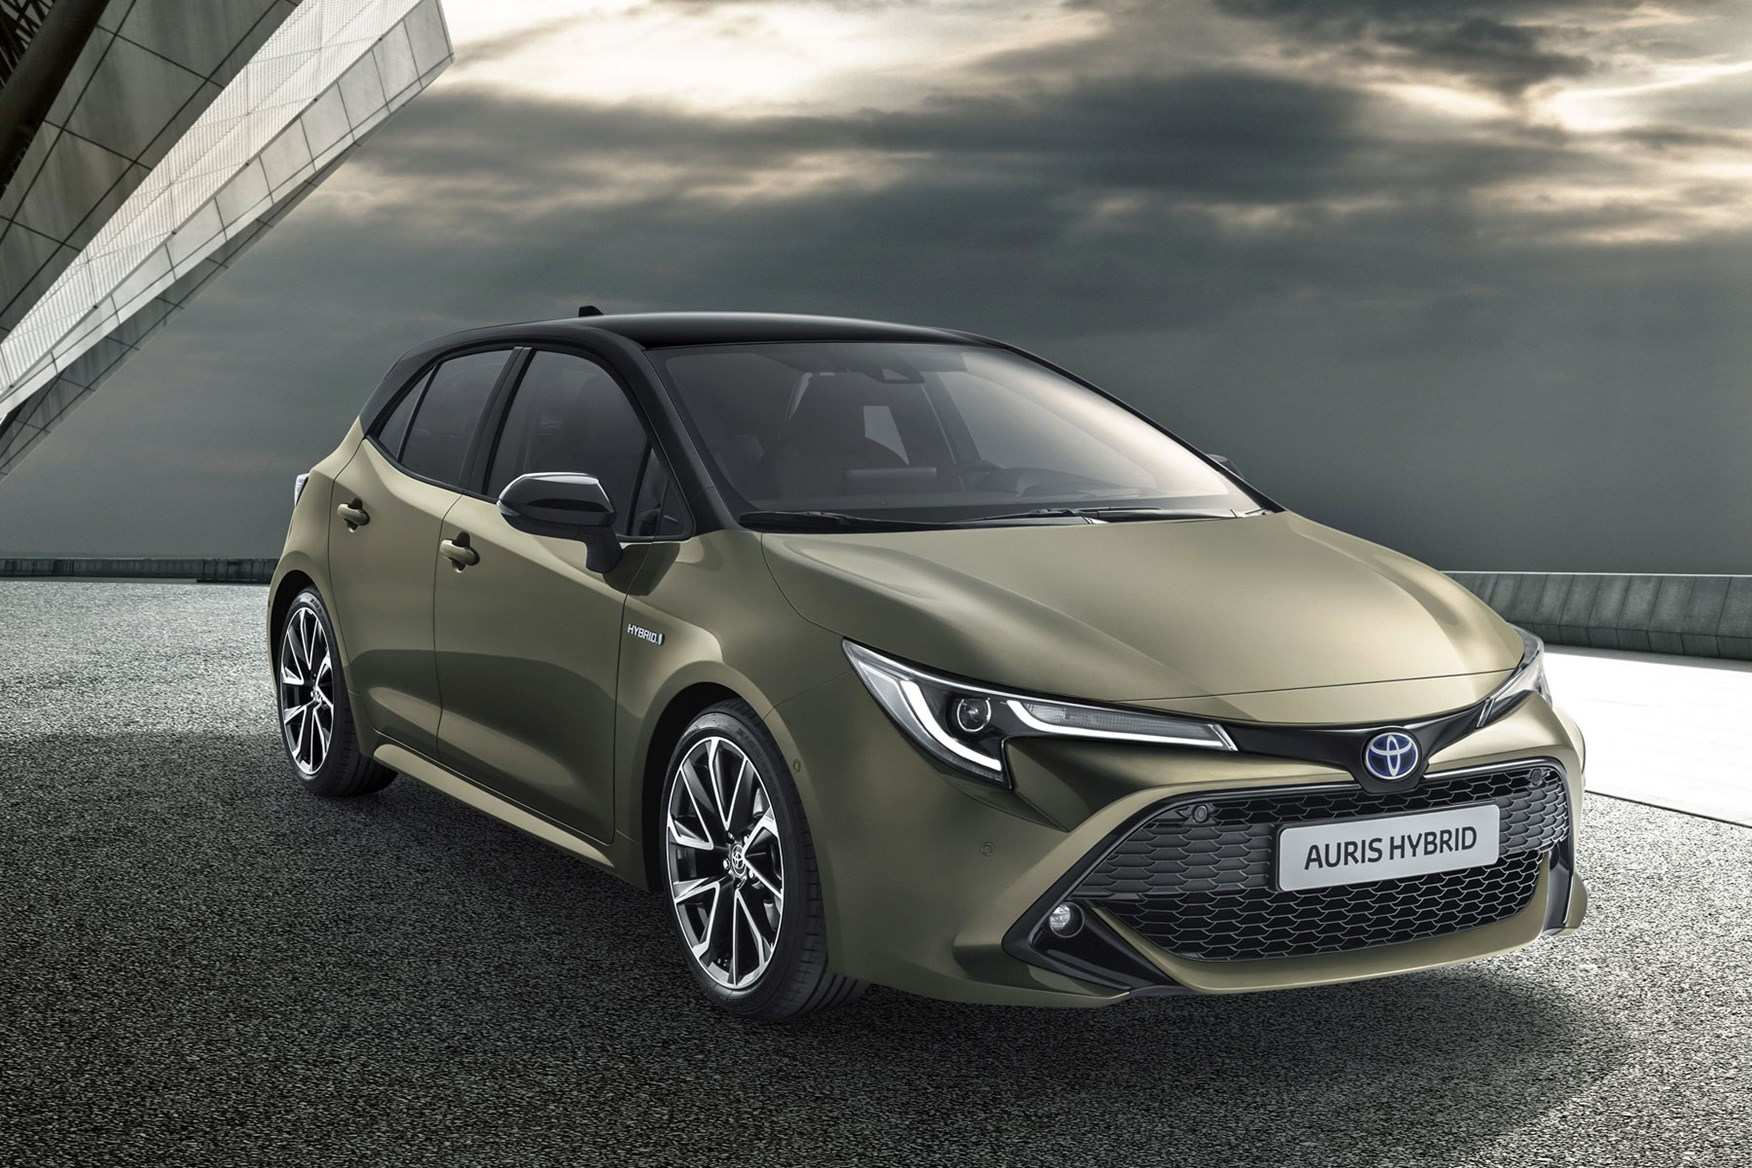 35 New Toyota Corolla 2019 Uk Spesification with Toyota Corolla 2019 Uk